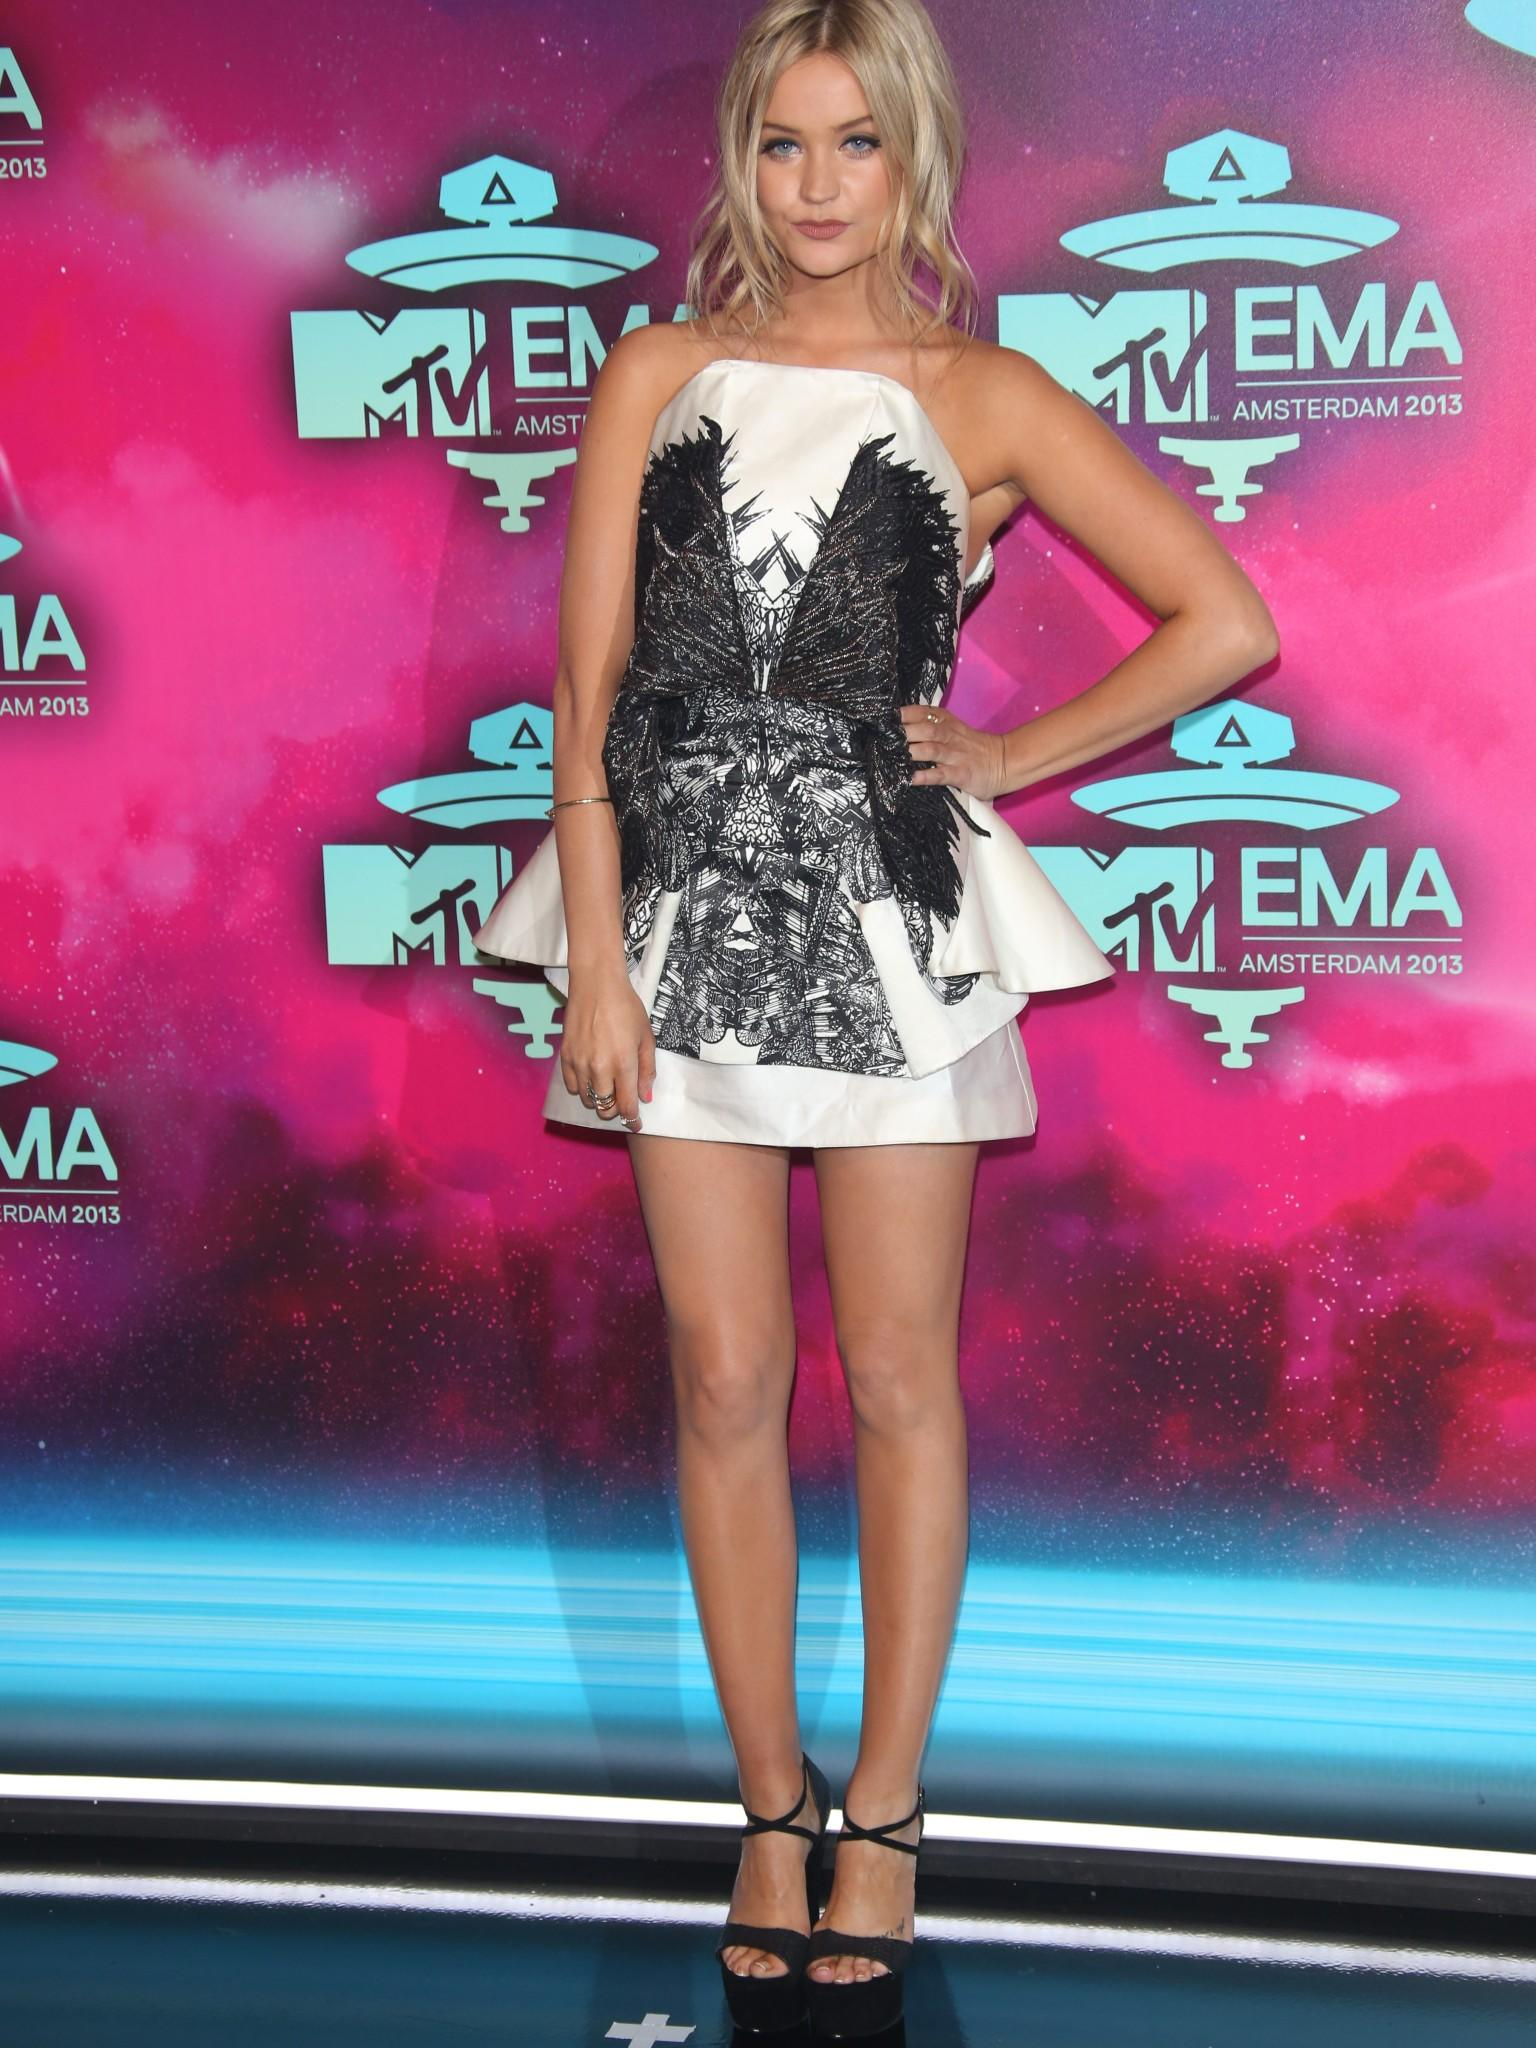 MTV EMA's Roter Teppich